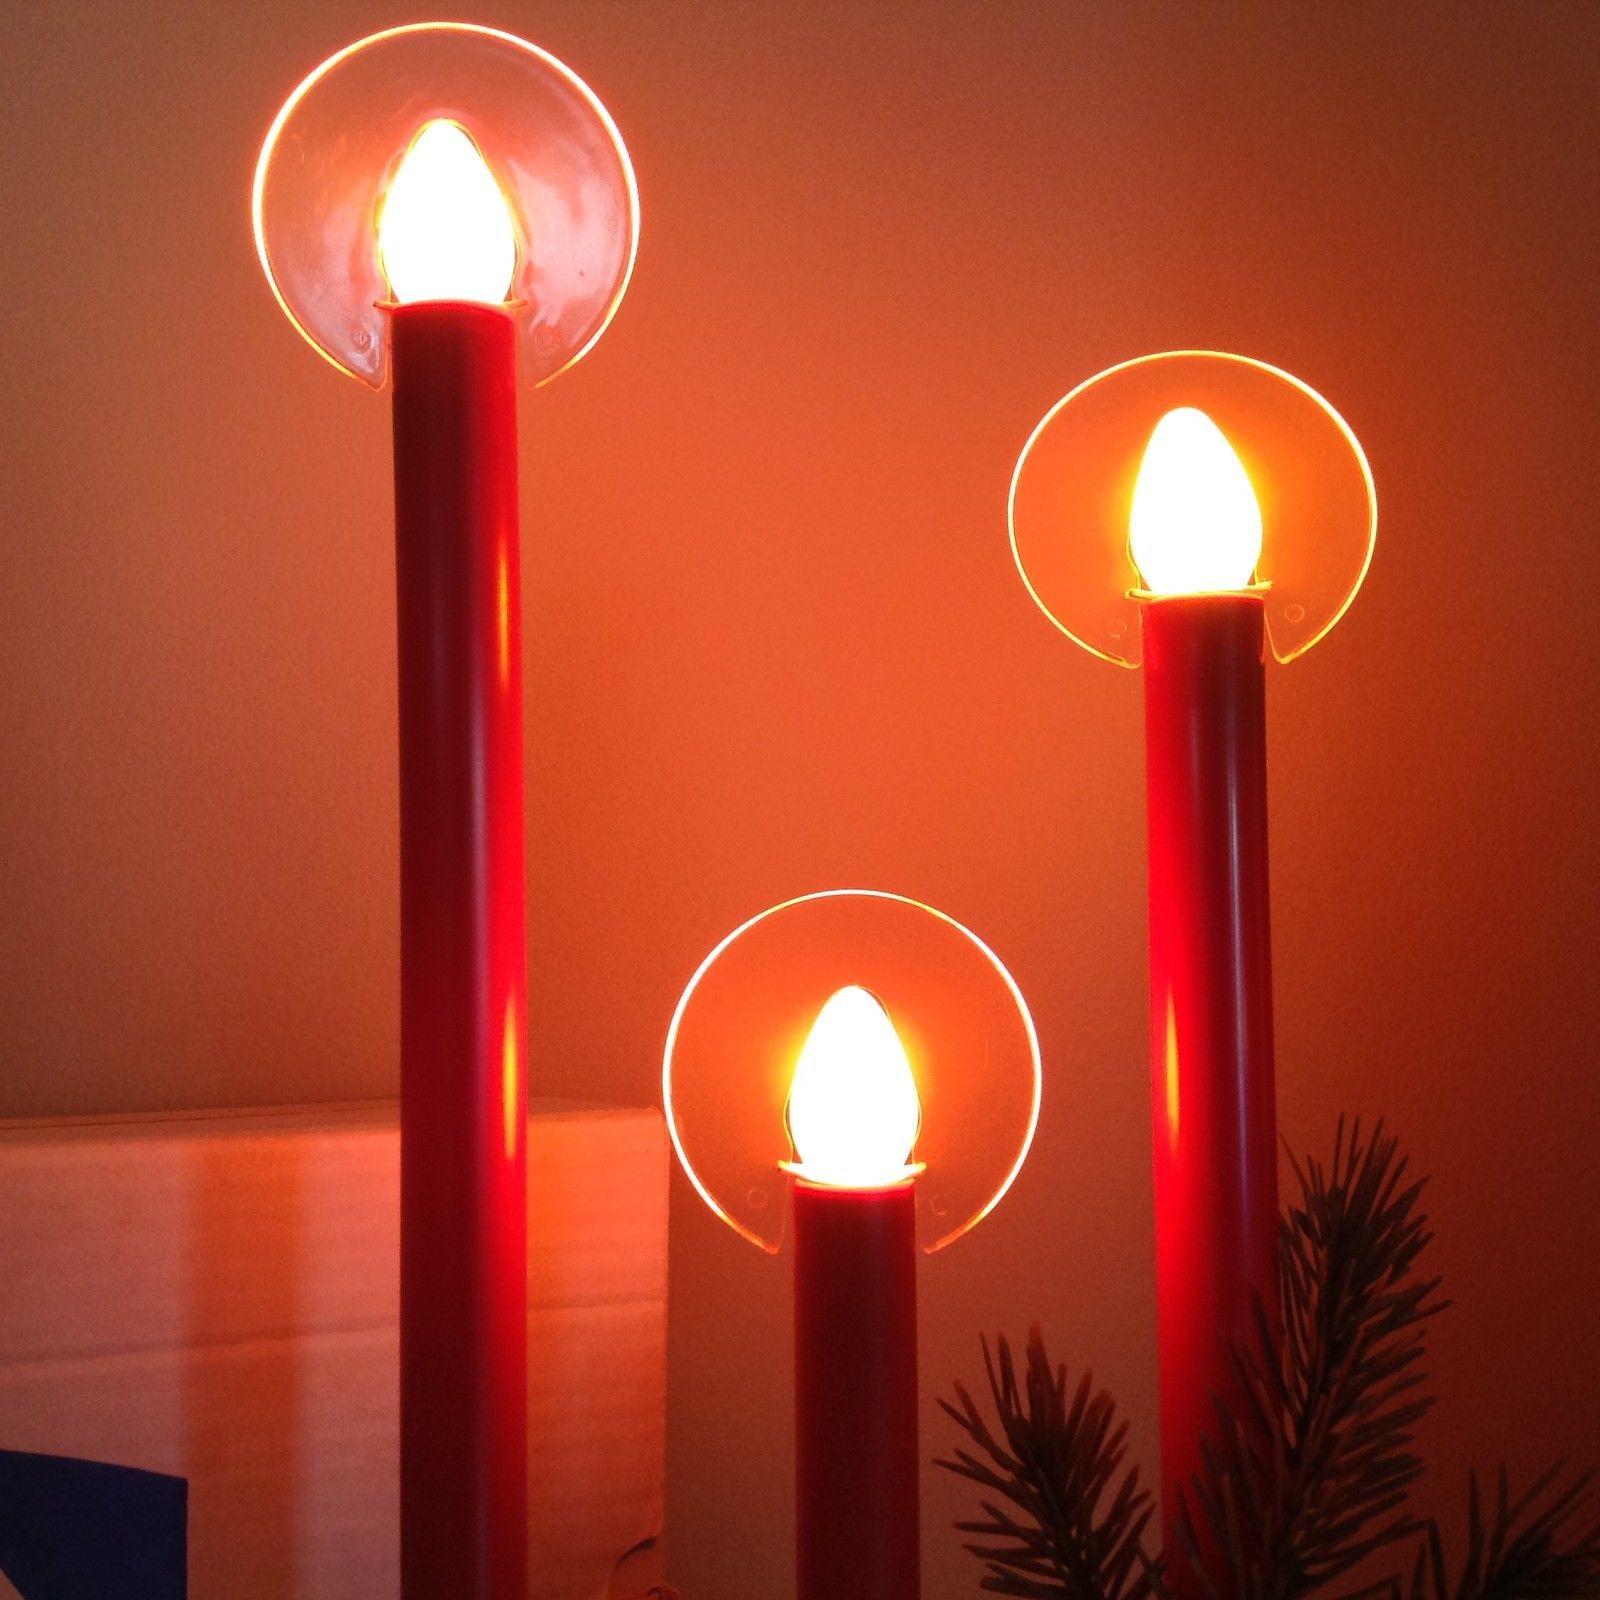 VINTAGE RED 3 LIGHT CHRISTMAS CANDOLIER ELECTRIC CANDLES window candelabra